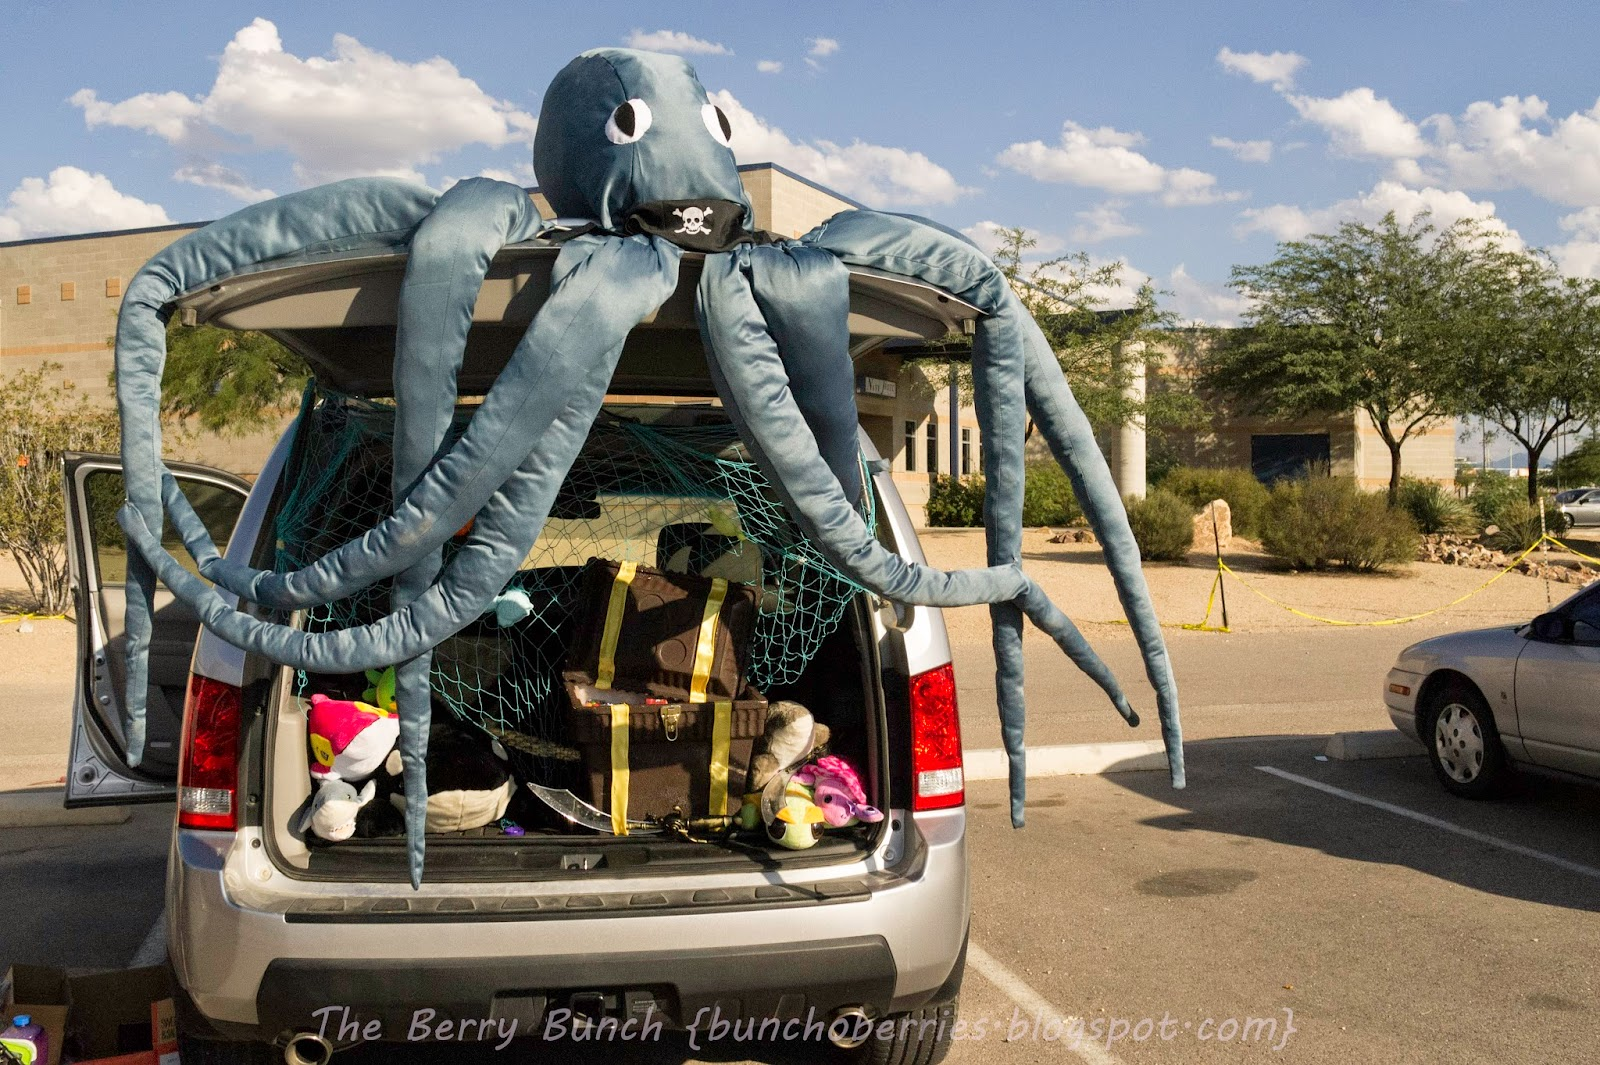 The Berry Bunch: an Octopus Trunk-or-Treat: Happy Halloween